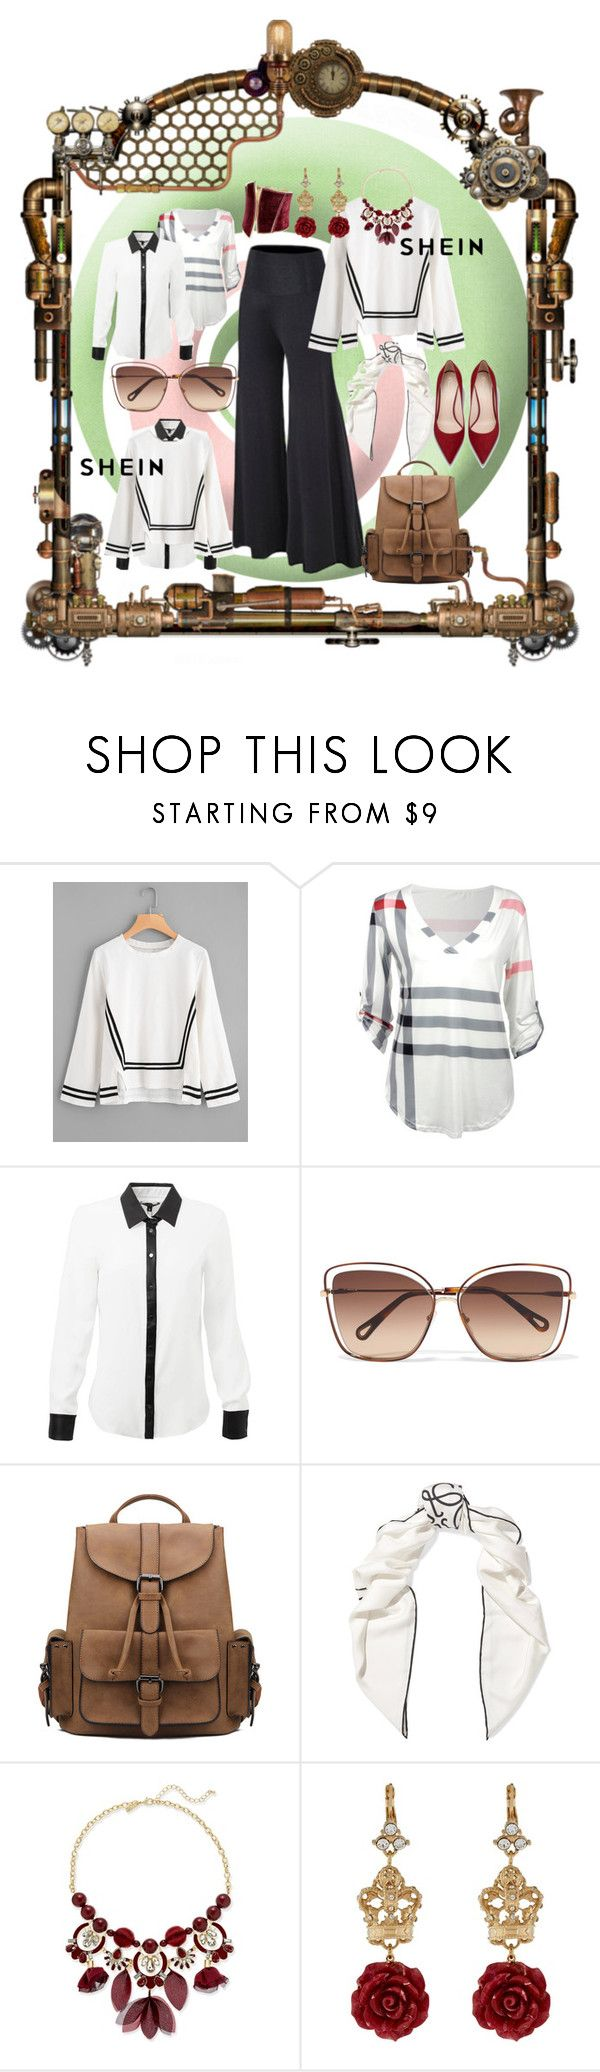 """dark red pop"" by caroline-buster-brown ❤ liked on Polyvore featuring Chloé, Loewe, INC International Concepts, Dolce&Gabbana and GUESS by Marciano"